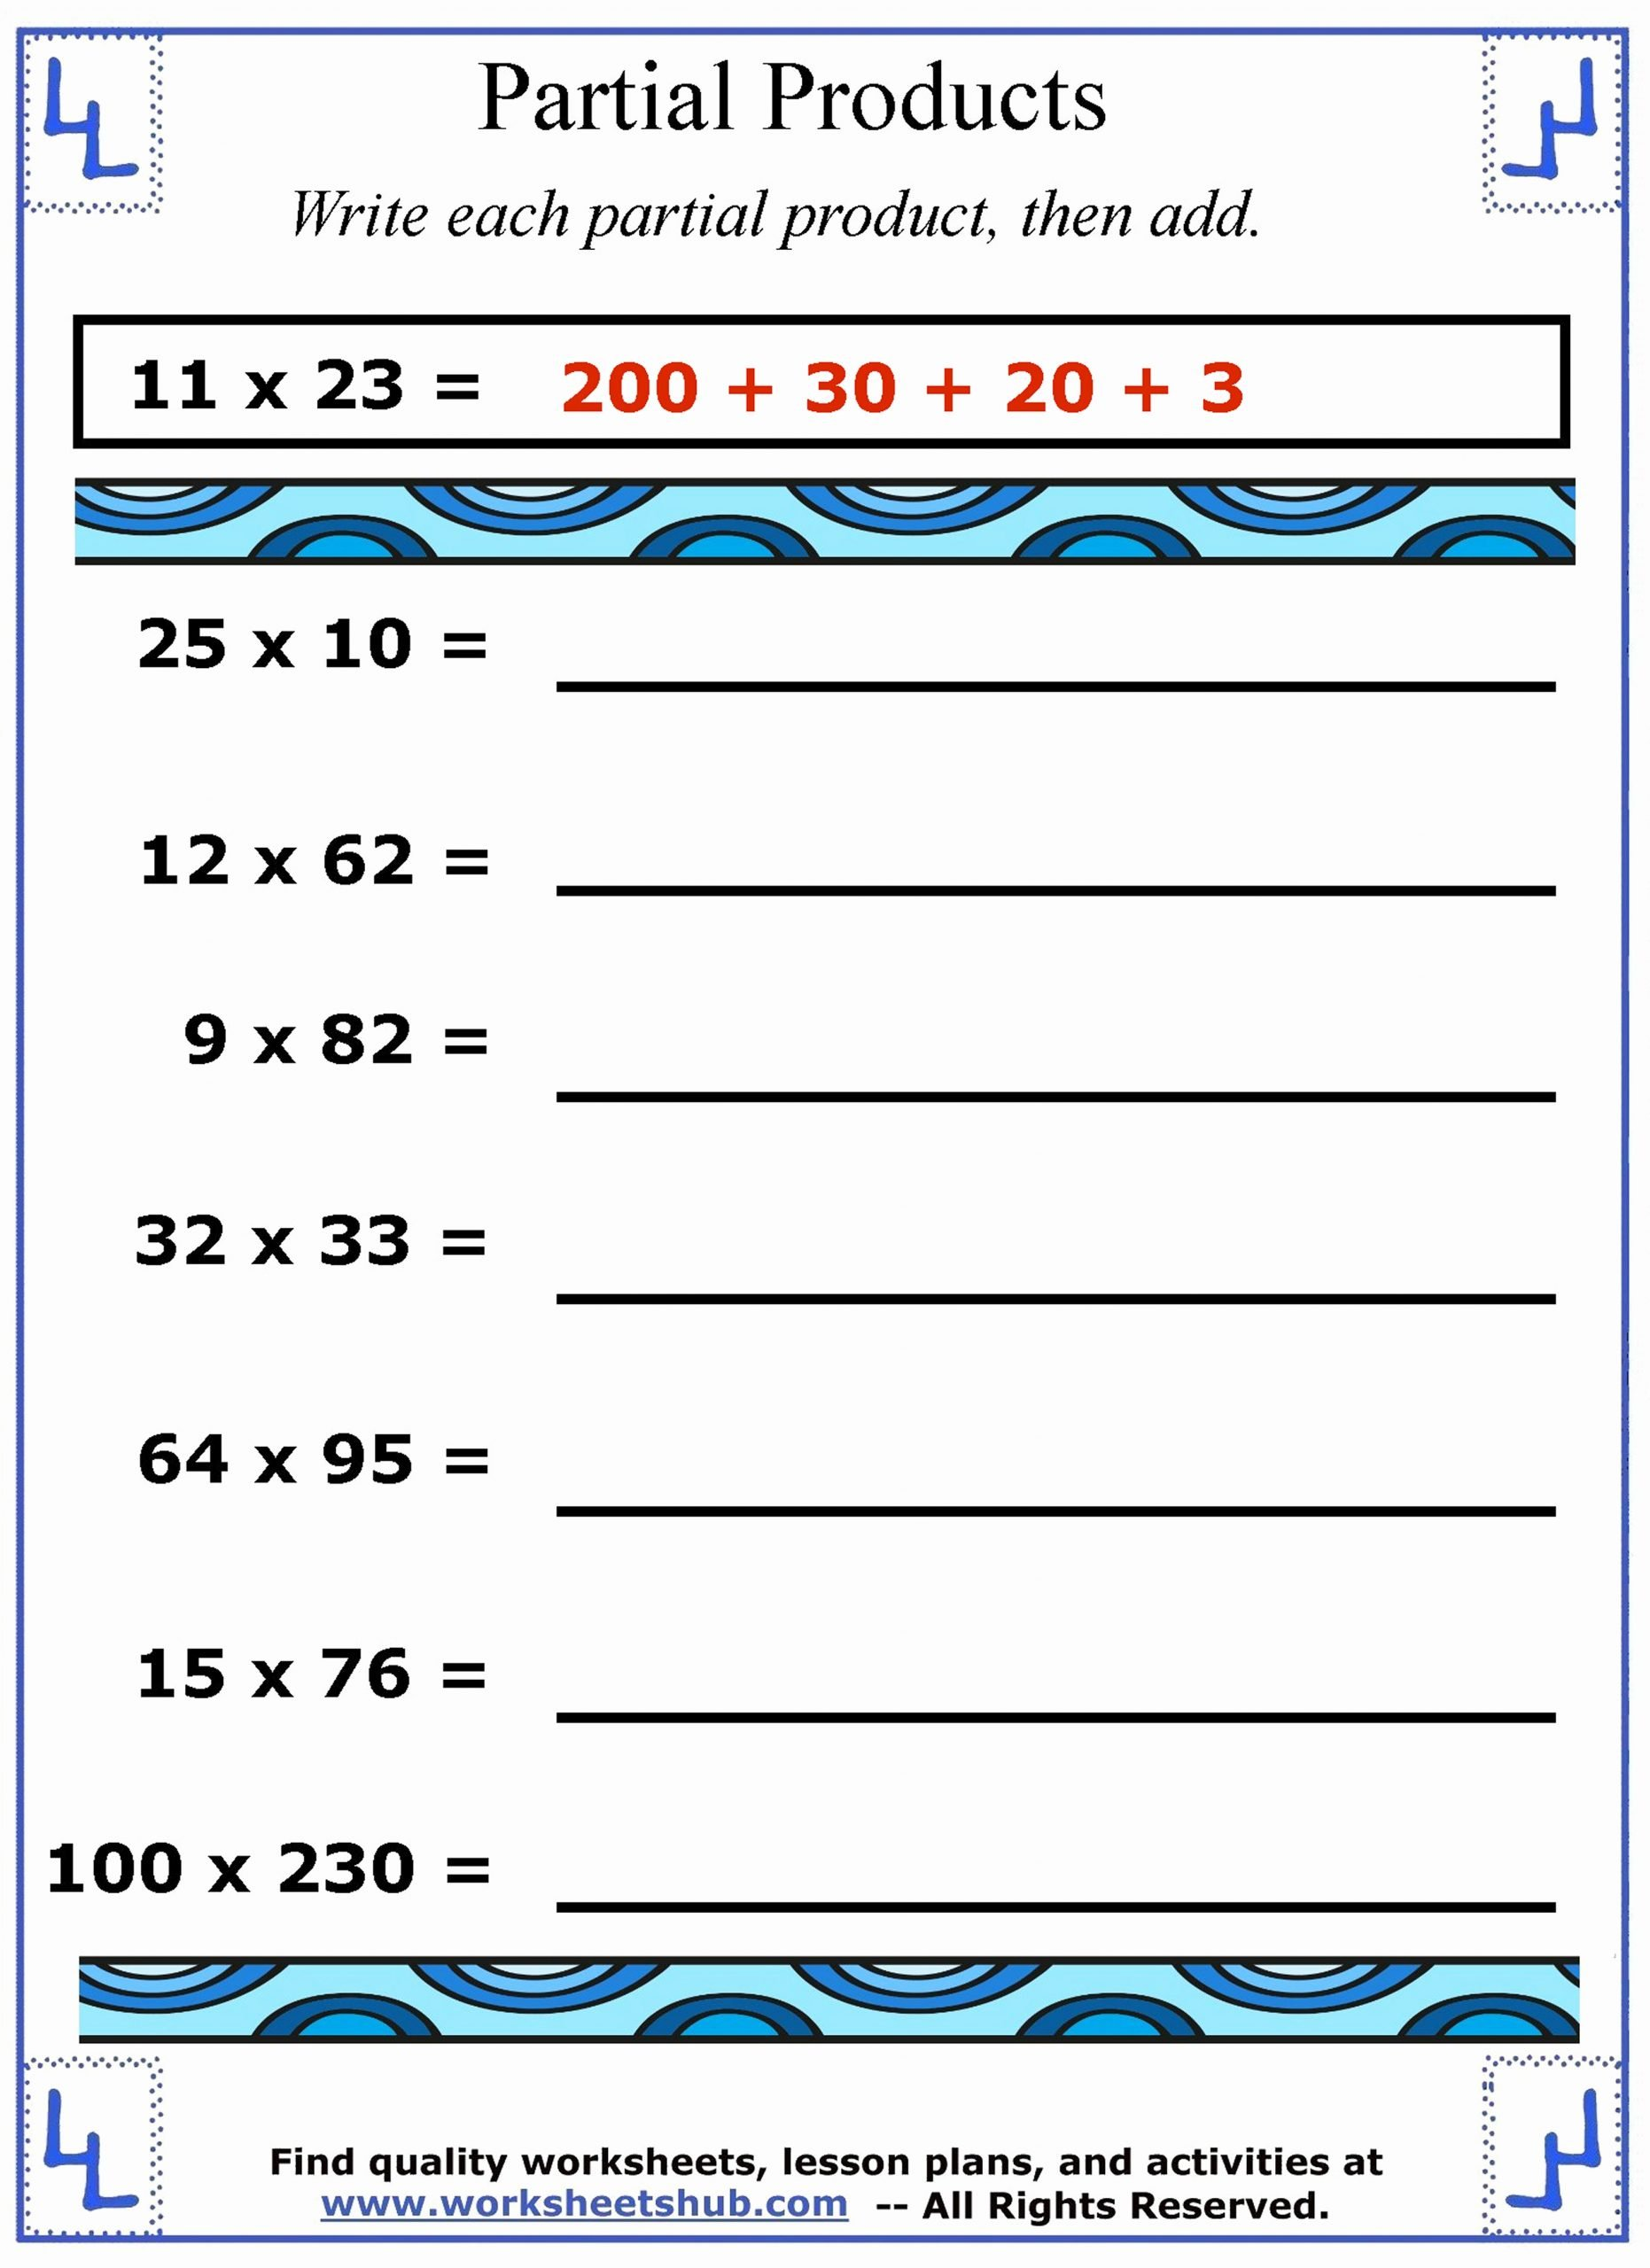 Partial Products Multiplication Worksheets New Partial Products Multiplication Strategies